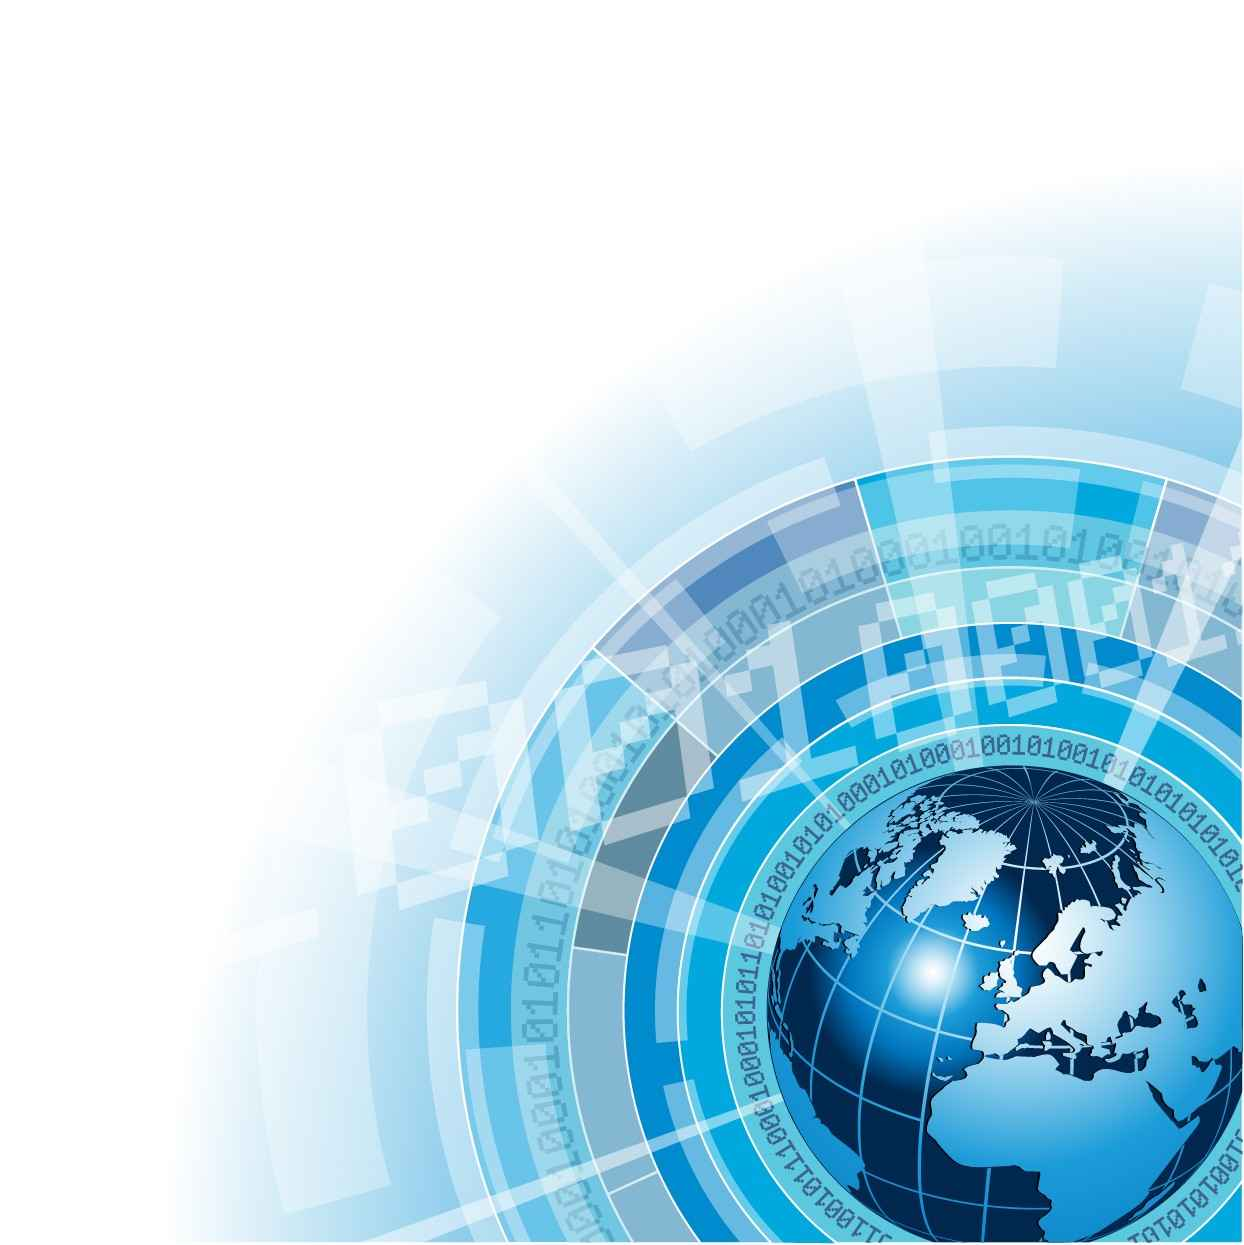 Global networking background png